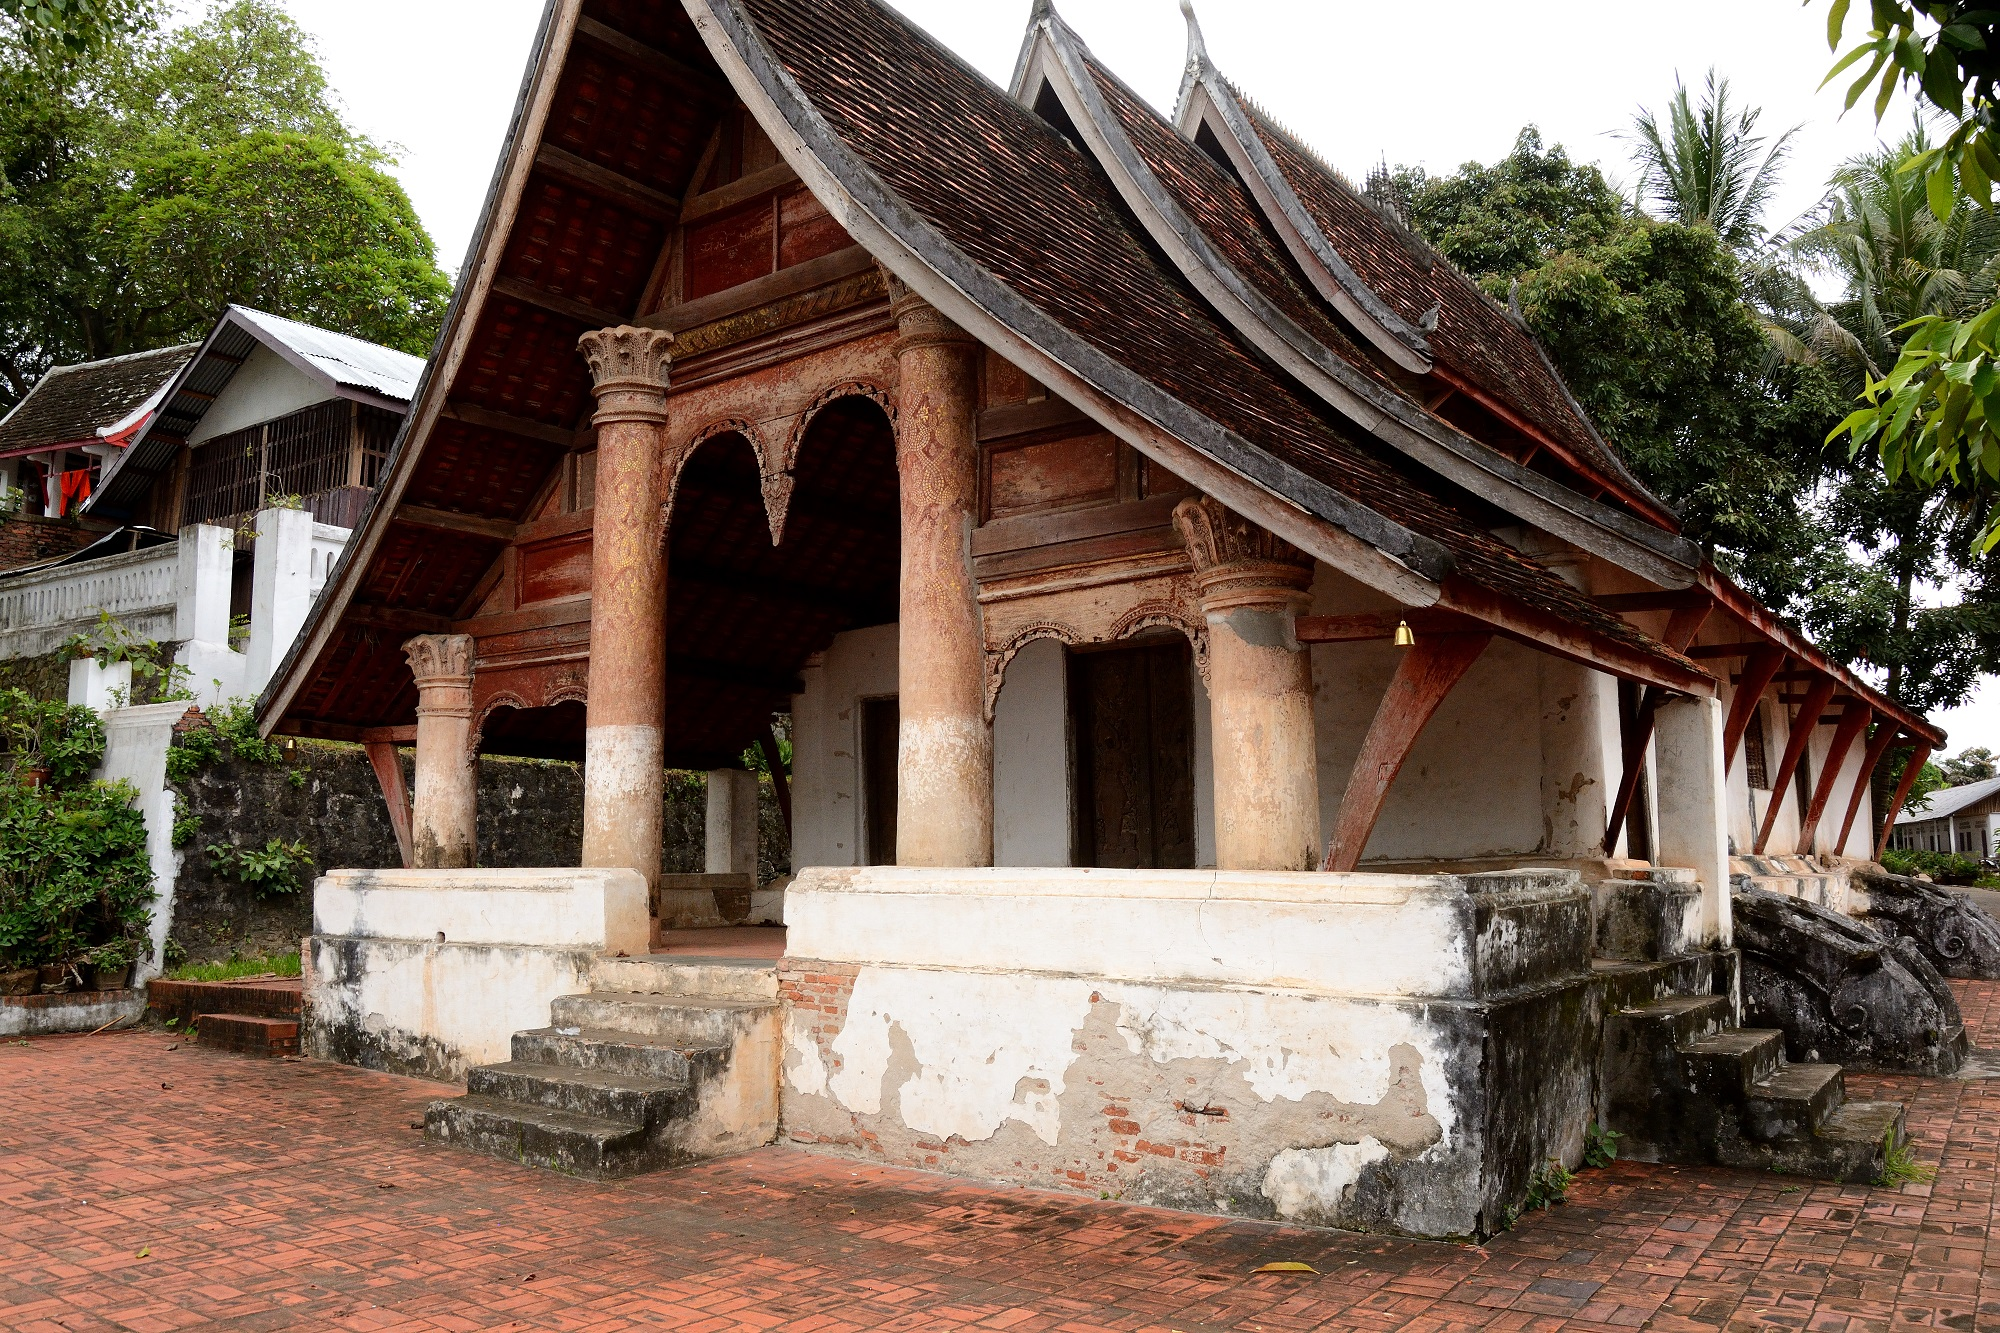 One of the magical Buddhist temples of Luang Prabang in Northern Laos